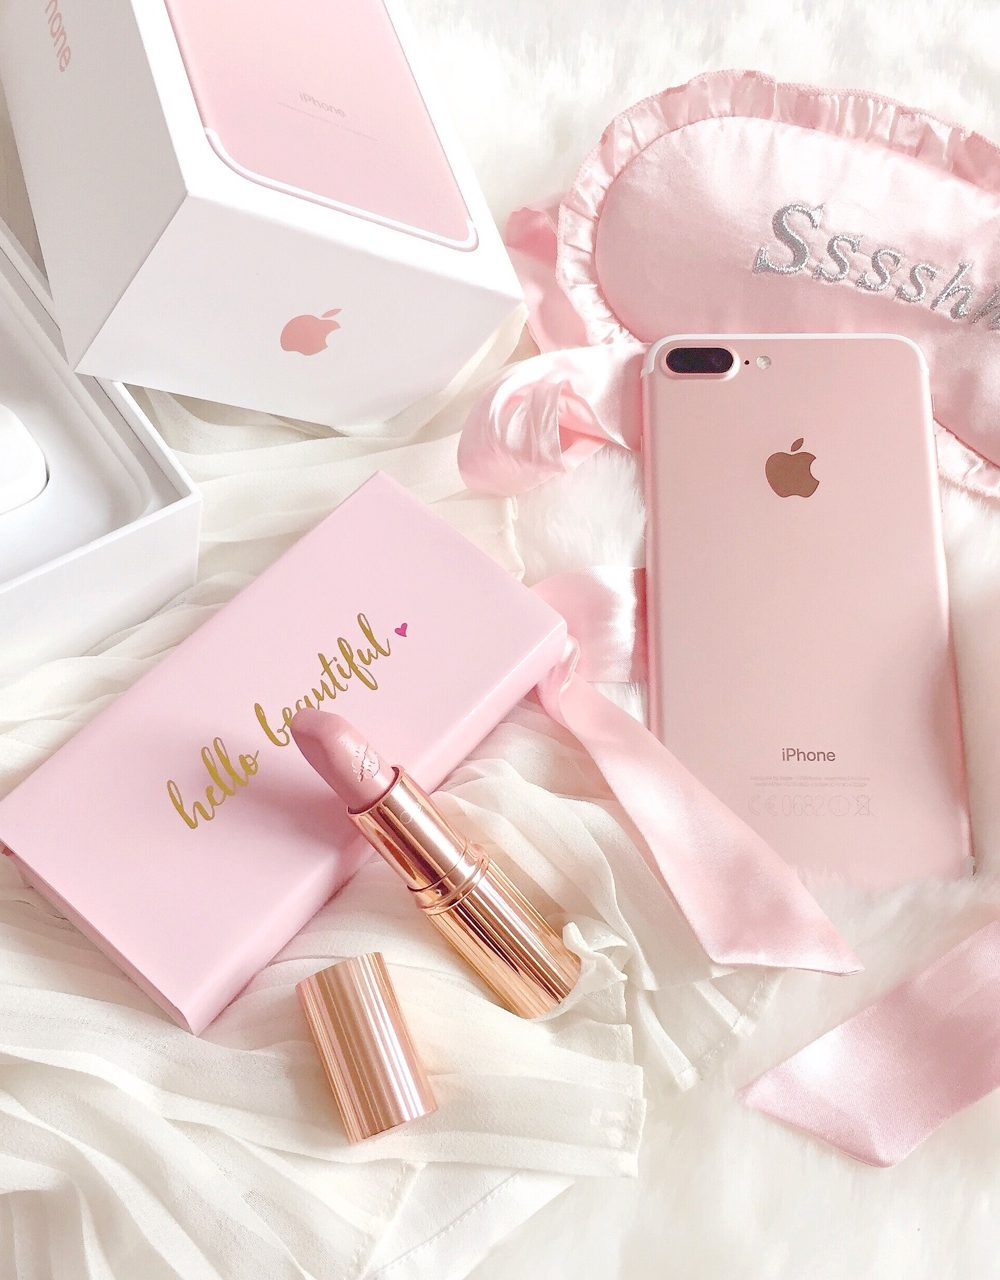 Rose Gold iPhone 7 Plus ~ Camera Review